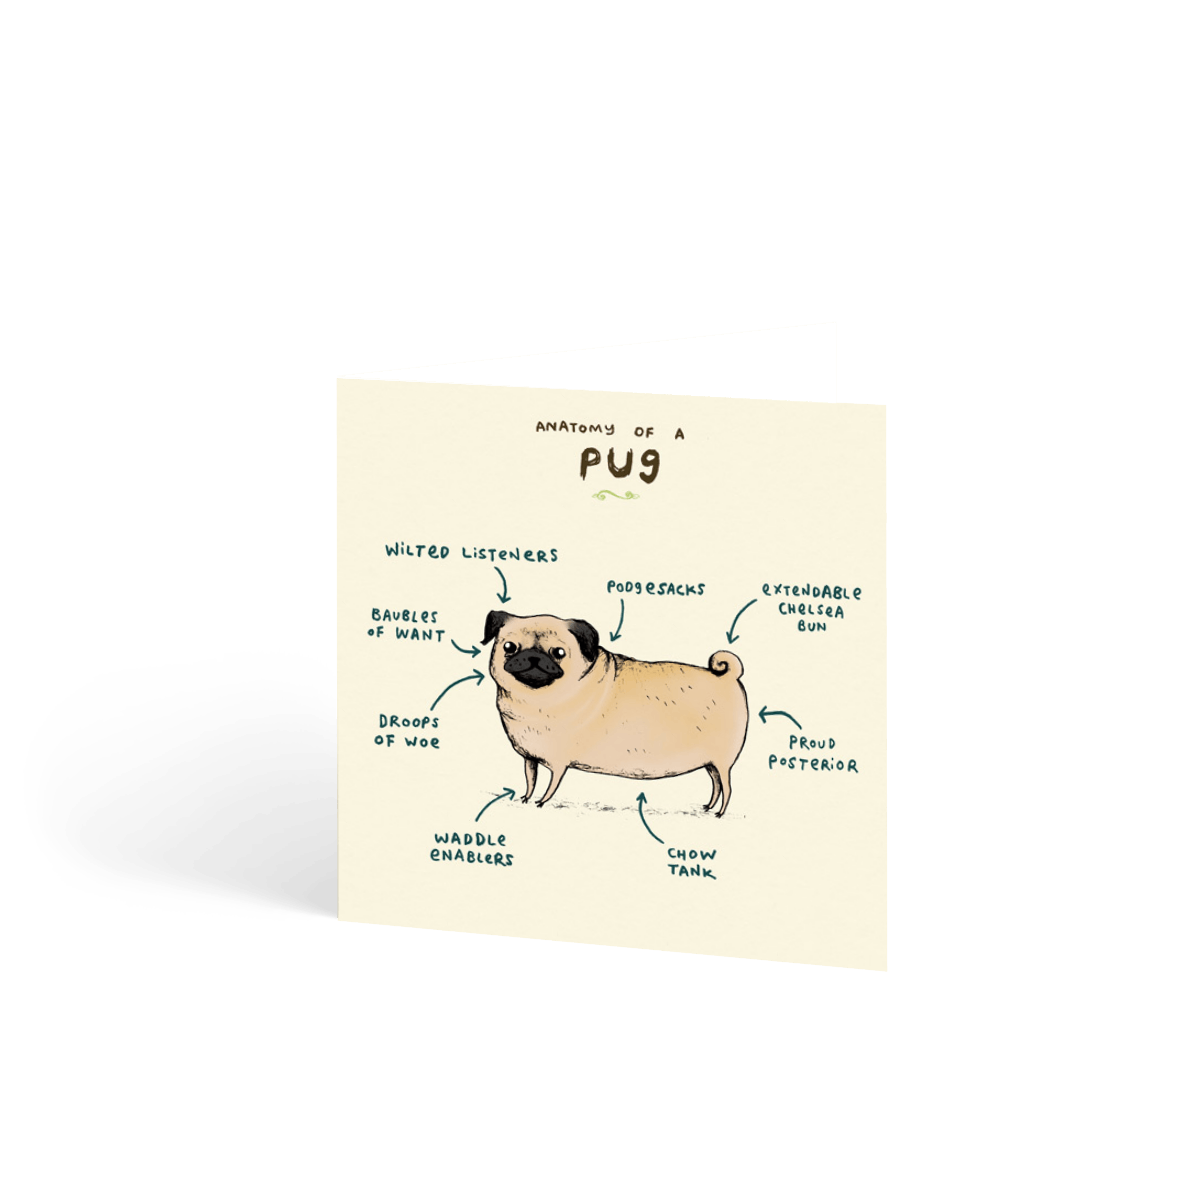 Https%3a%2f%2fwww.papier.com%2fproduct image%2f6832%2f16%2fanatomy of a pug 1677 front 1461770388.png?ixlib=rb 1.1